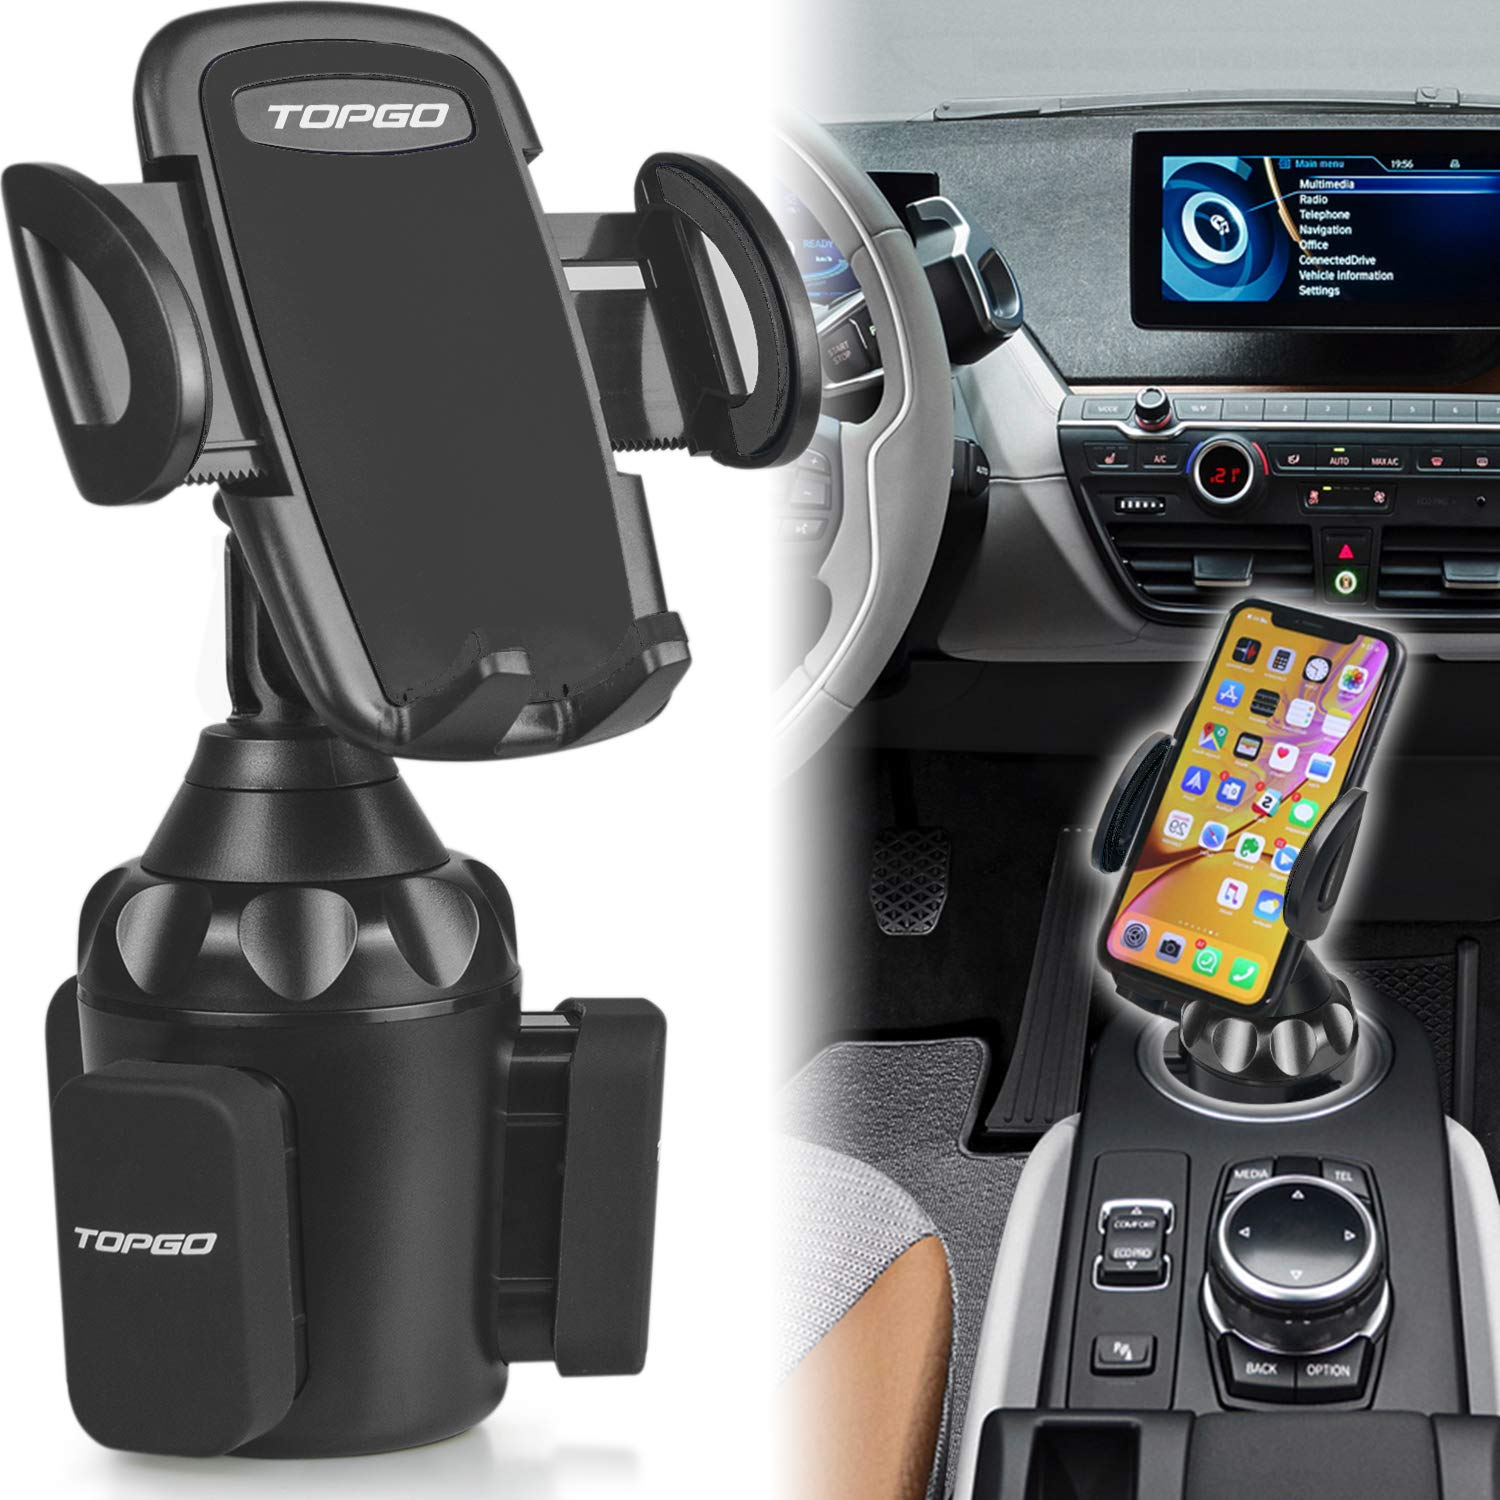 [Upgraded] Car Cup Holder Phone Mount Adjustable Automobile Cup Holder Smart Phone Cradle Car Mount for iPhone XR/XS Max/X/8/7 Plus/6s/Samsung Galaxy S10+/Note 9/S8 Plus/S7 Edge(Black) by TOPGO